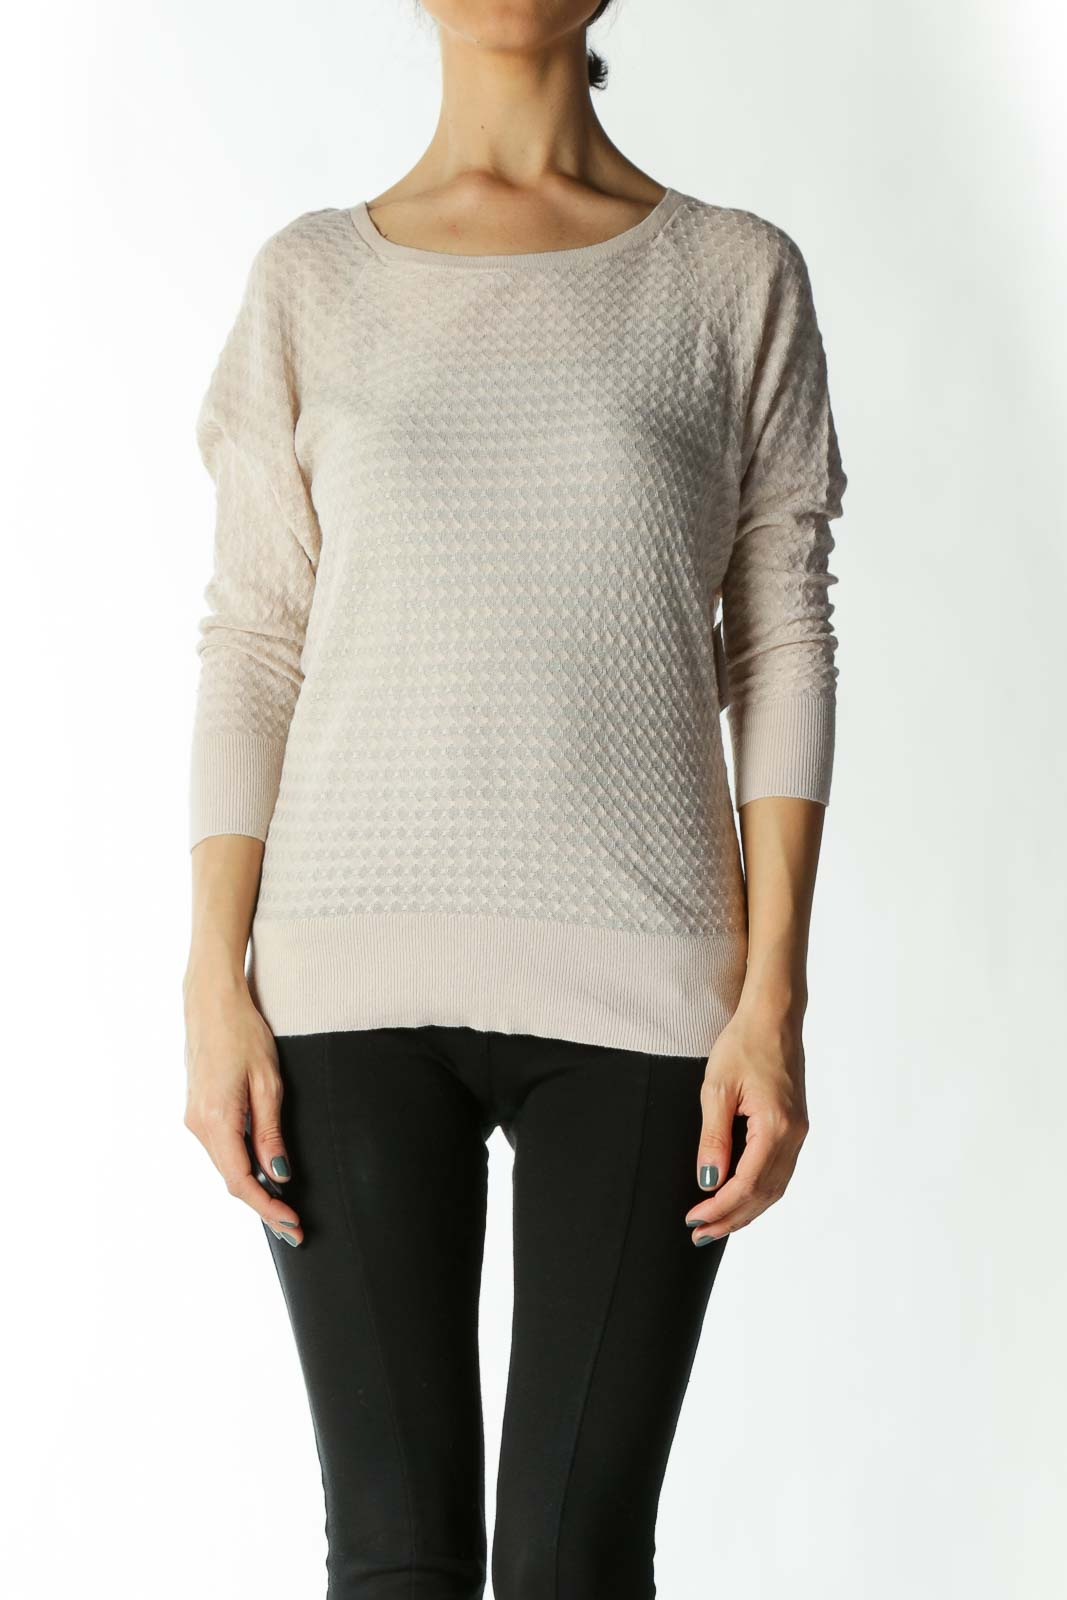 Beige Light-Weight Back-Buttoned Sweater with Taped Sleeves and Waist